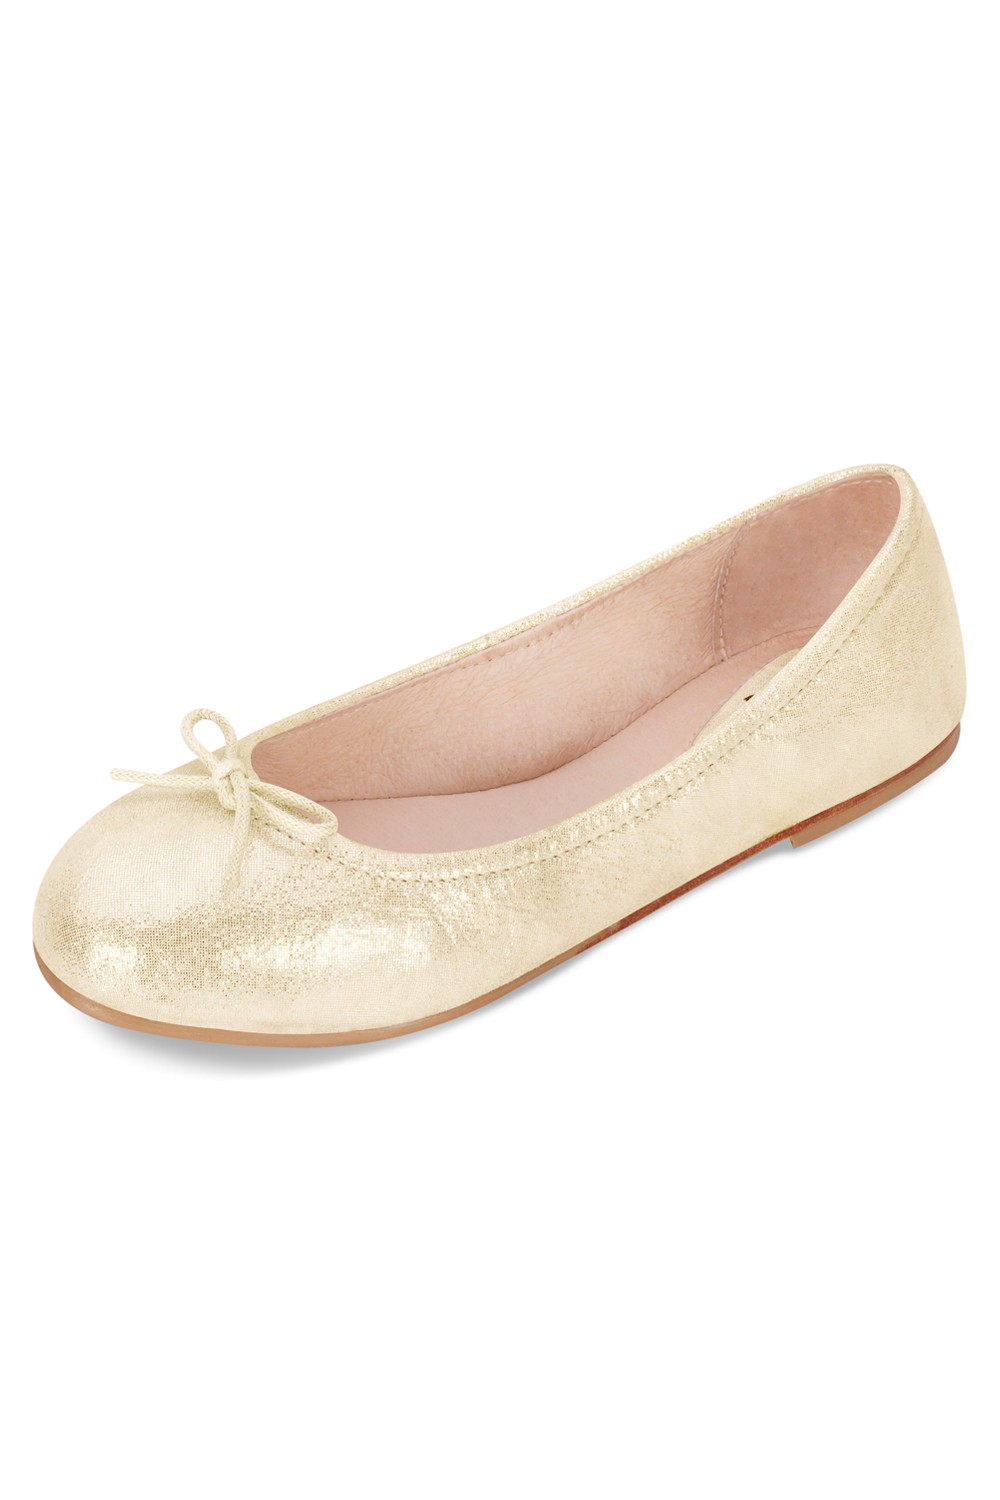 Sirenetta - Fille Girls Fashion Shoes